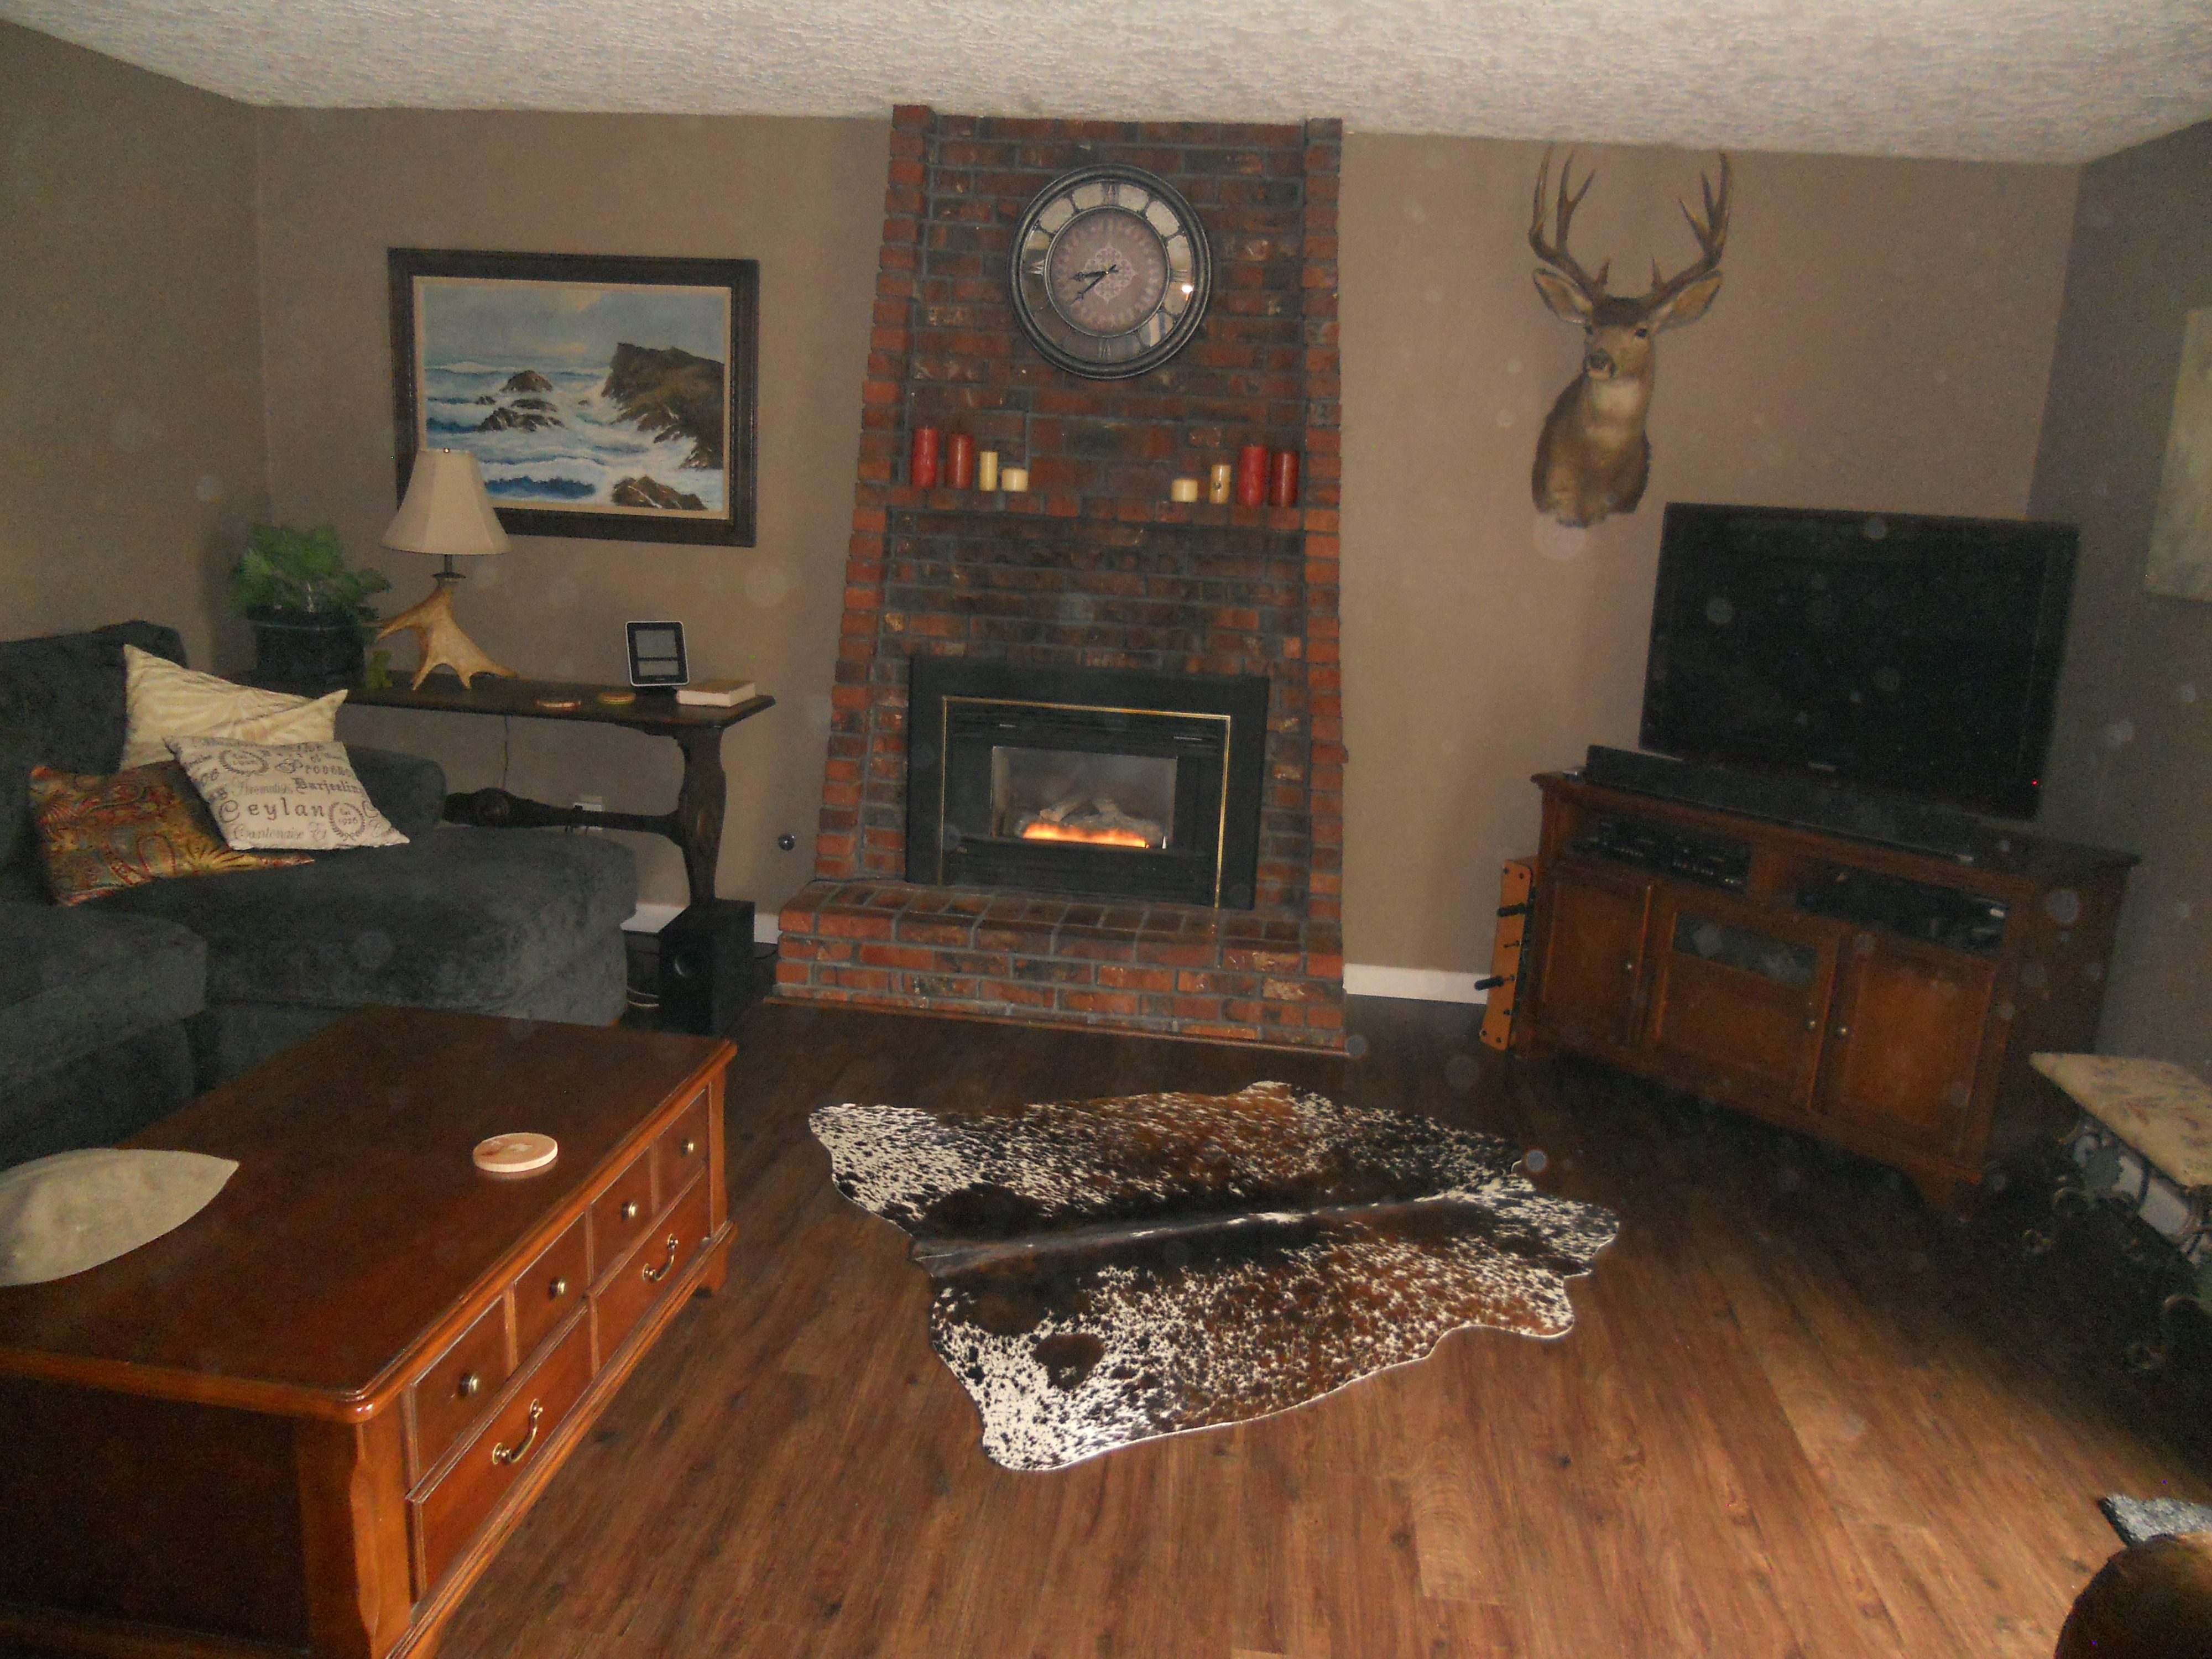 Cowhide rug near fireplace